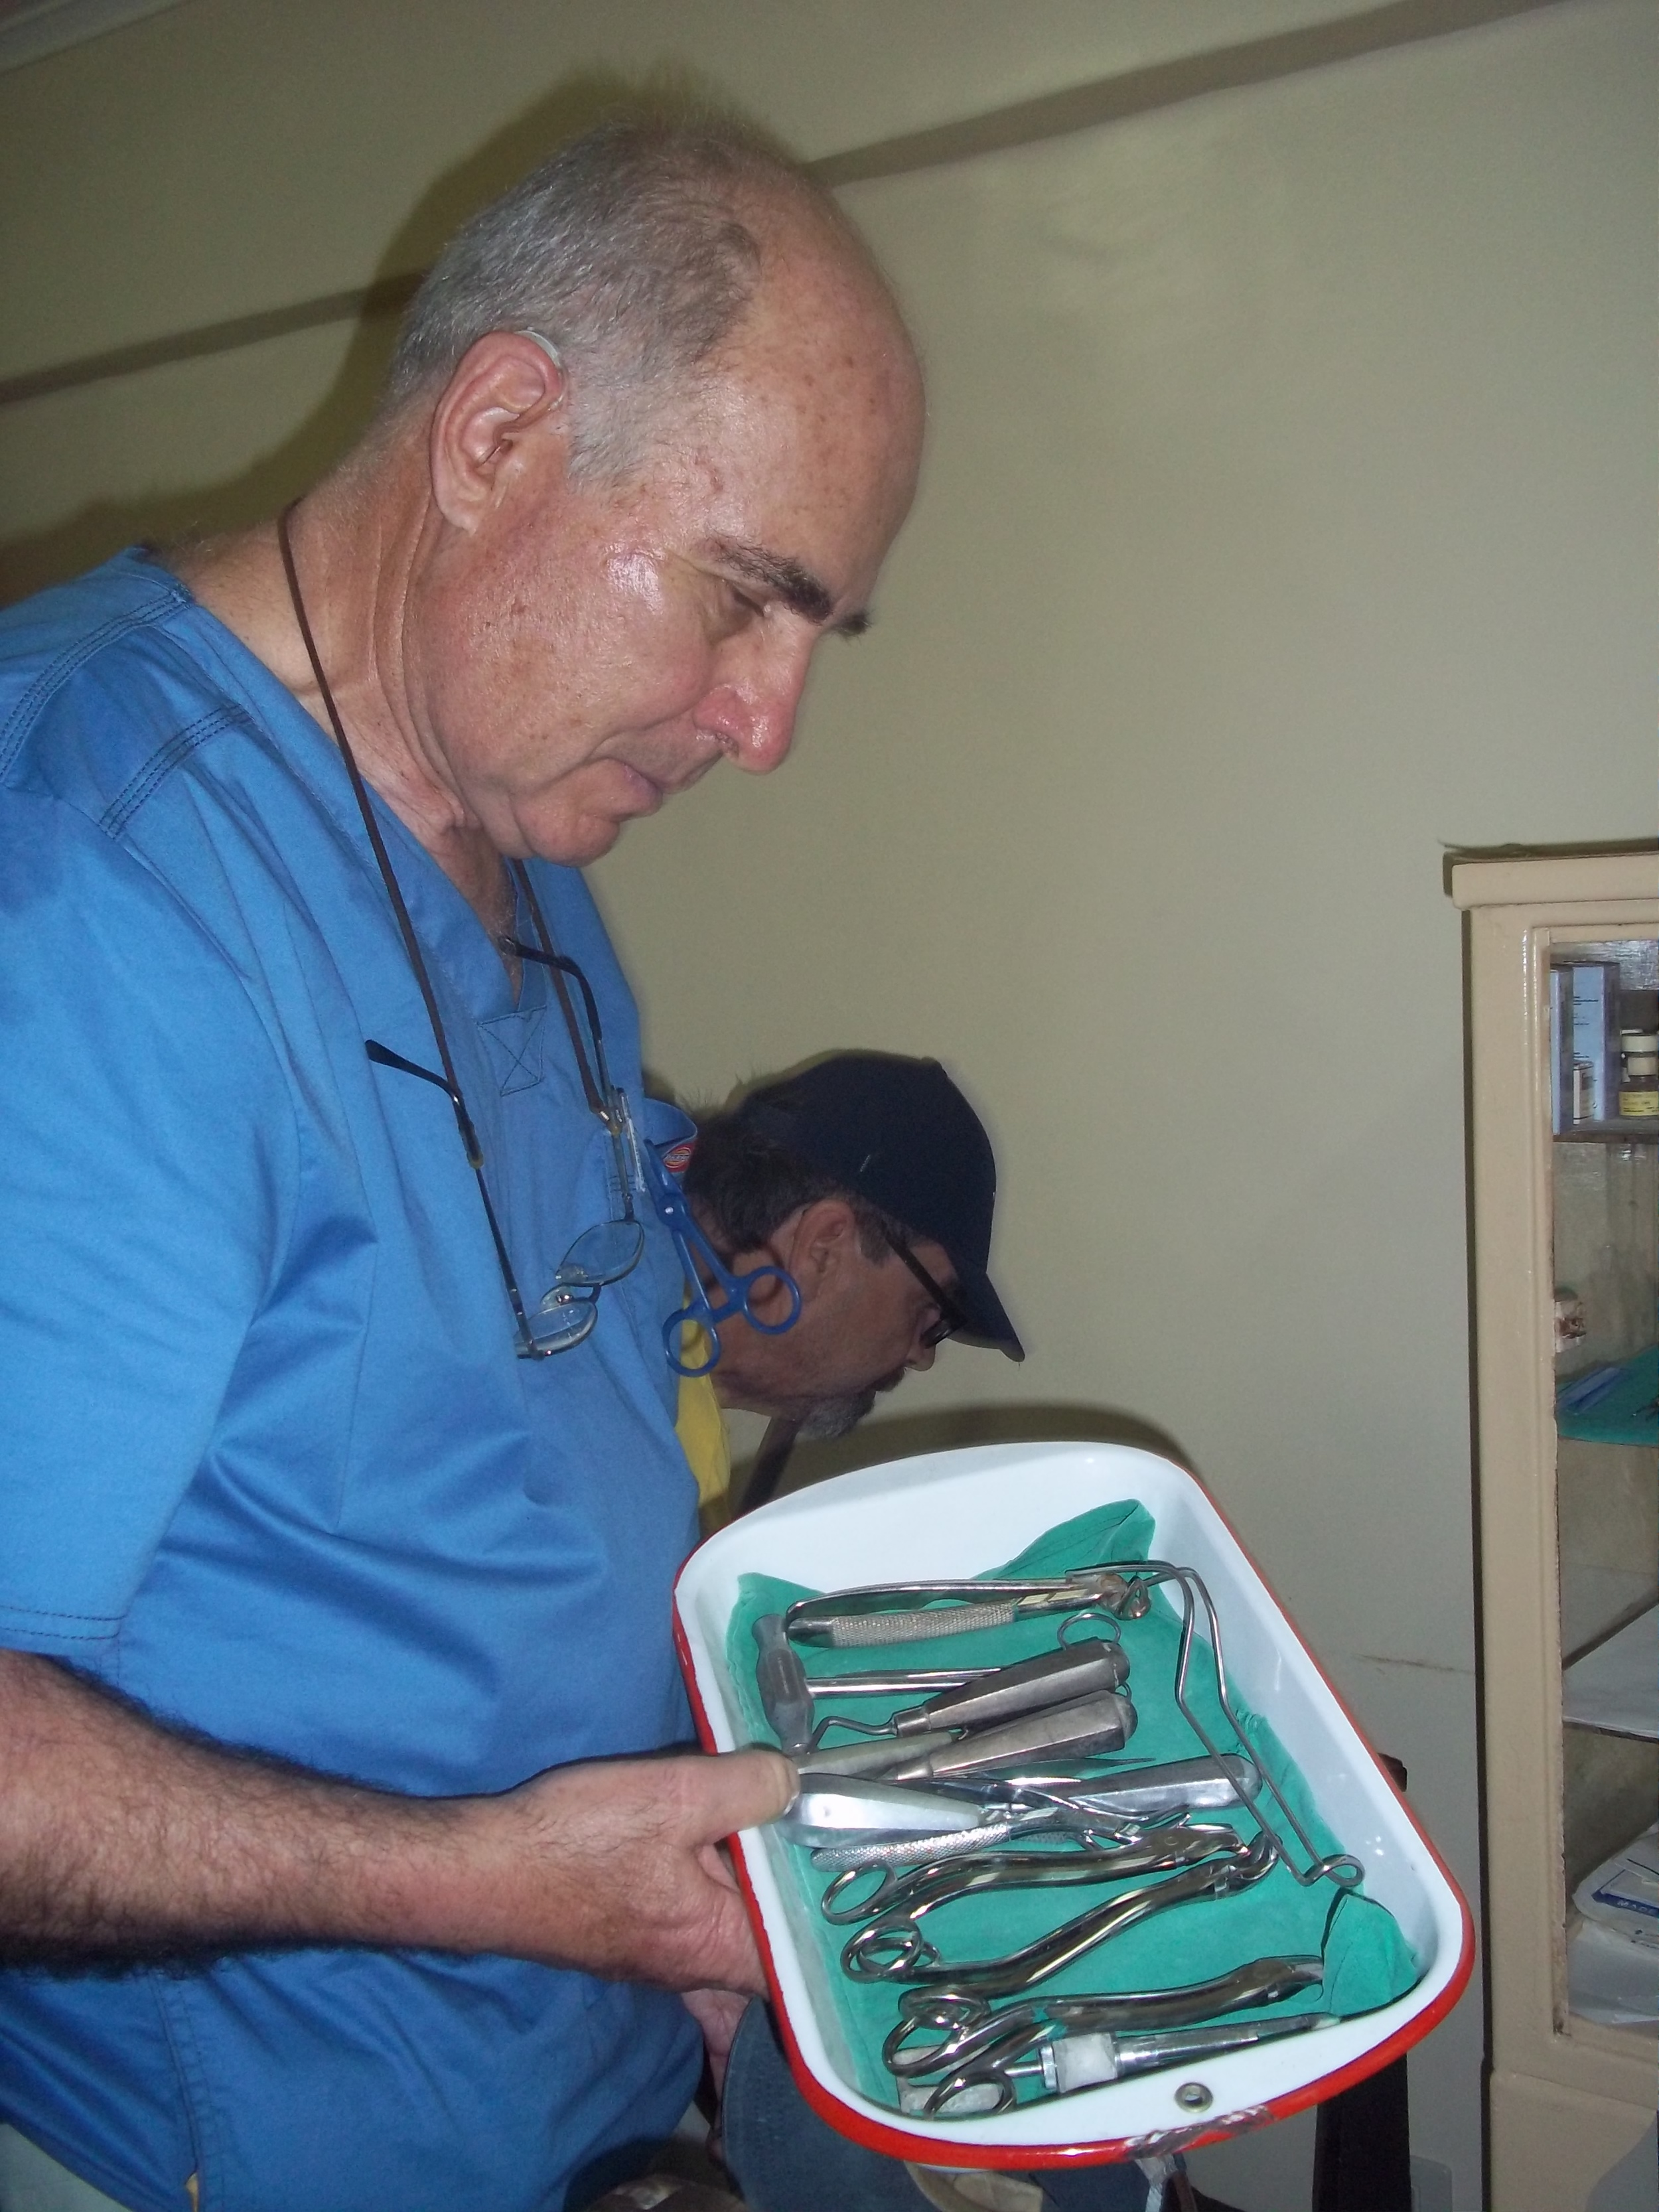 Dr. Jeffry examining unused dental supplies at the local hospital